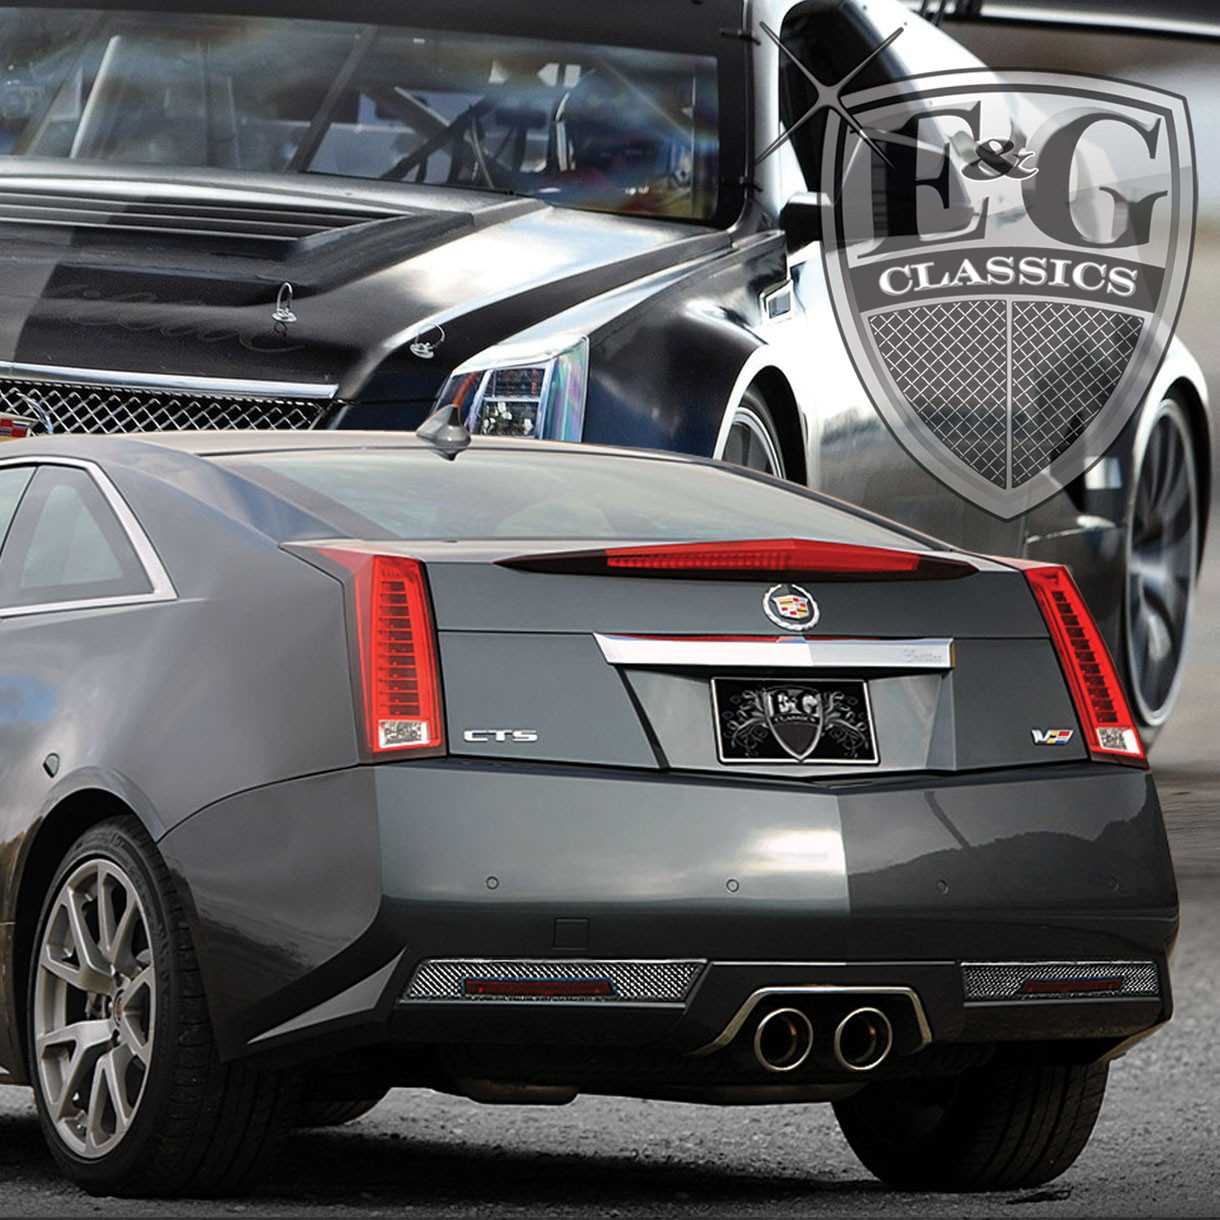 Cadillac Cts 2013 Price: E&G Classics 2011-2013 Cadillac CTS Accessories Rear Accent Kits For The Cts-V Only